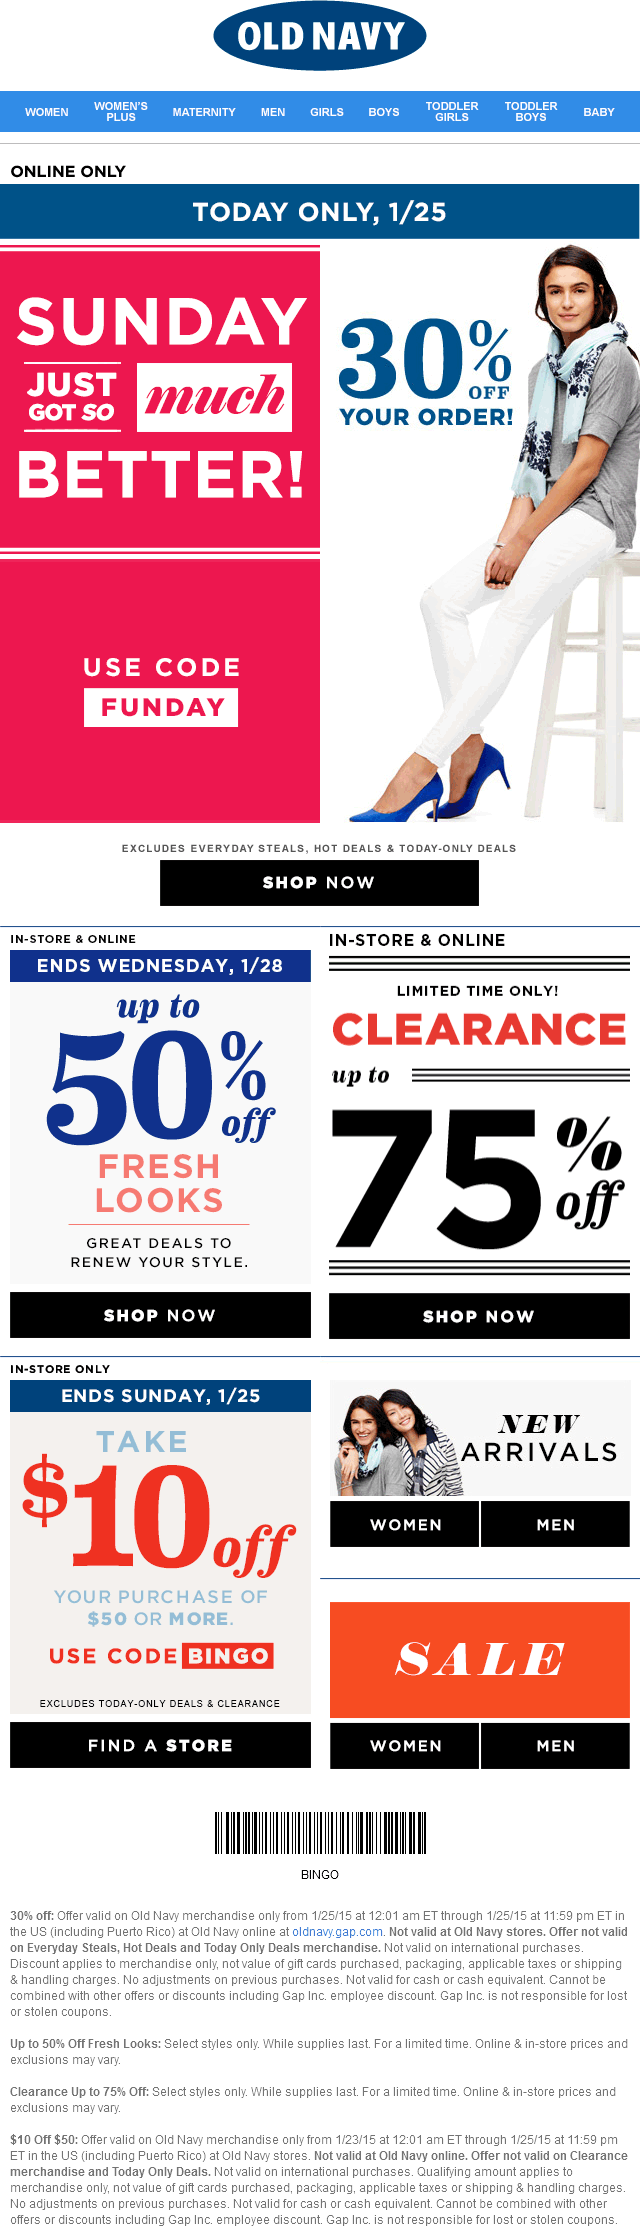 Old Navy Coupon October 2017 $10 off $50 today at Old Navy, or 30% online via promo code FUNDAY